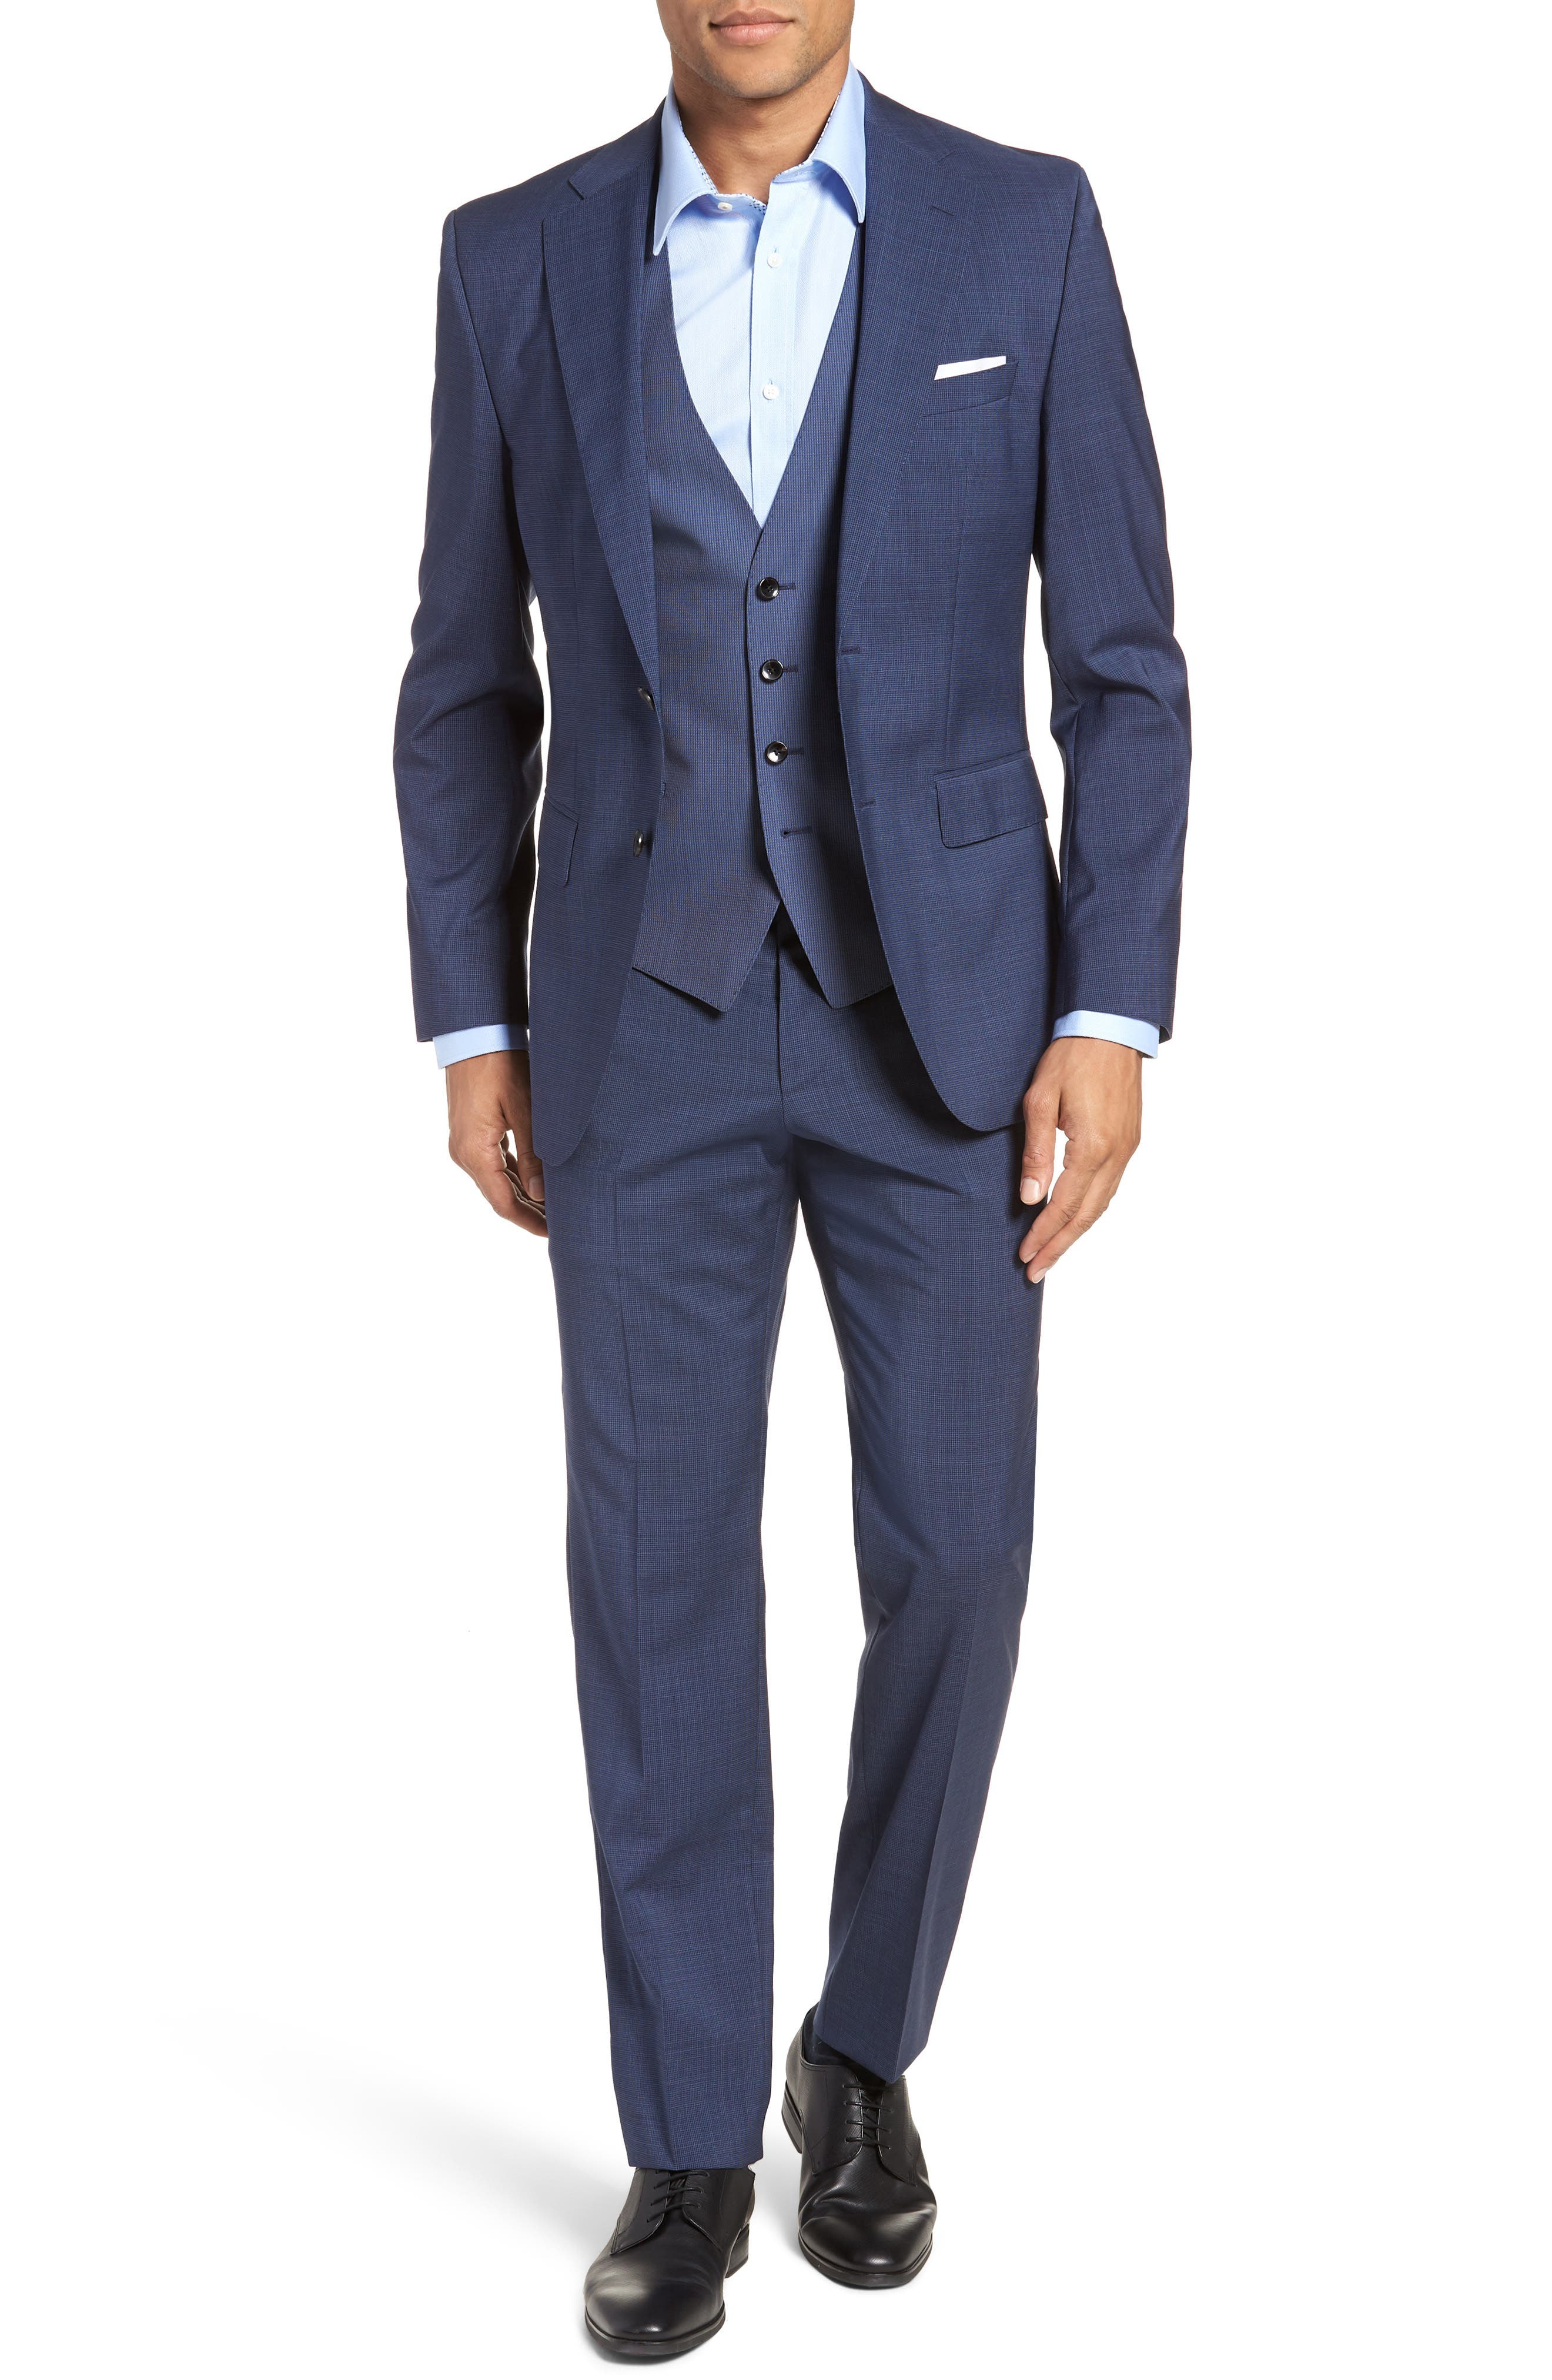 Johnstons/Lenon Classic Fit Houndstooth Wool Suit,                             Alternate thumbnail 8, color,                             BLUE